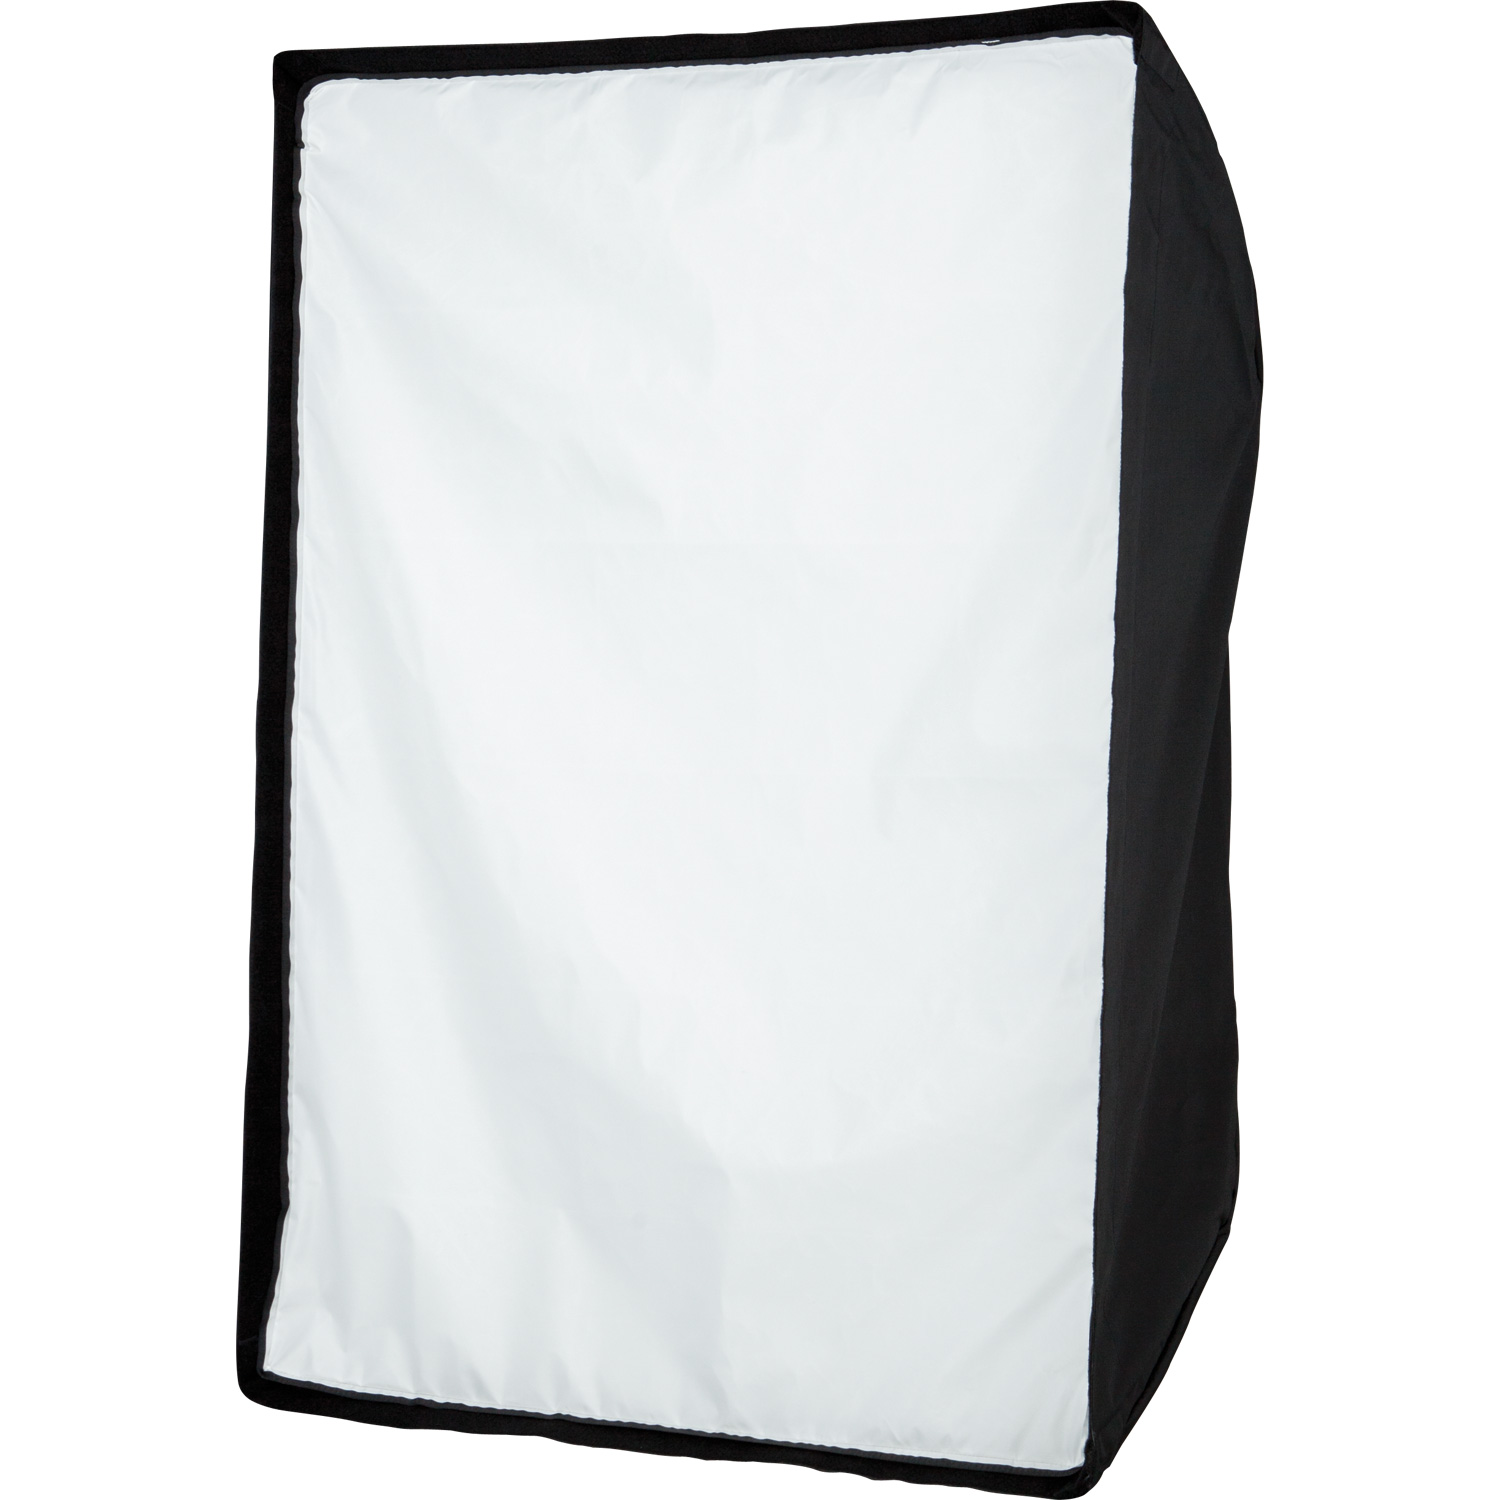 Pro 36-in. x 48-in. Softbox with Silver Interior